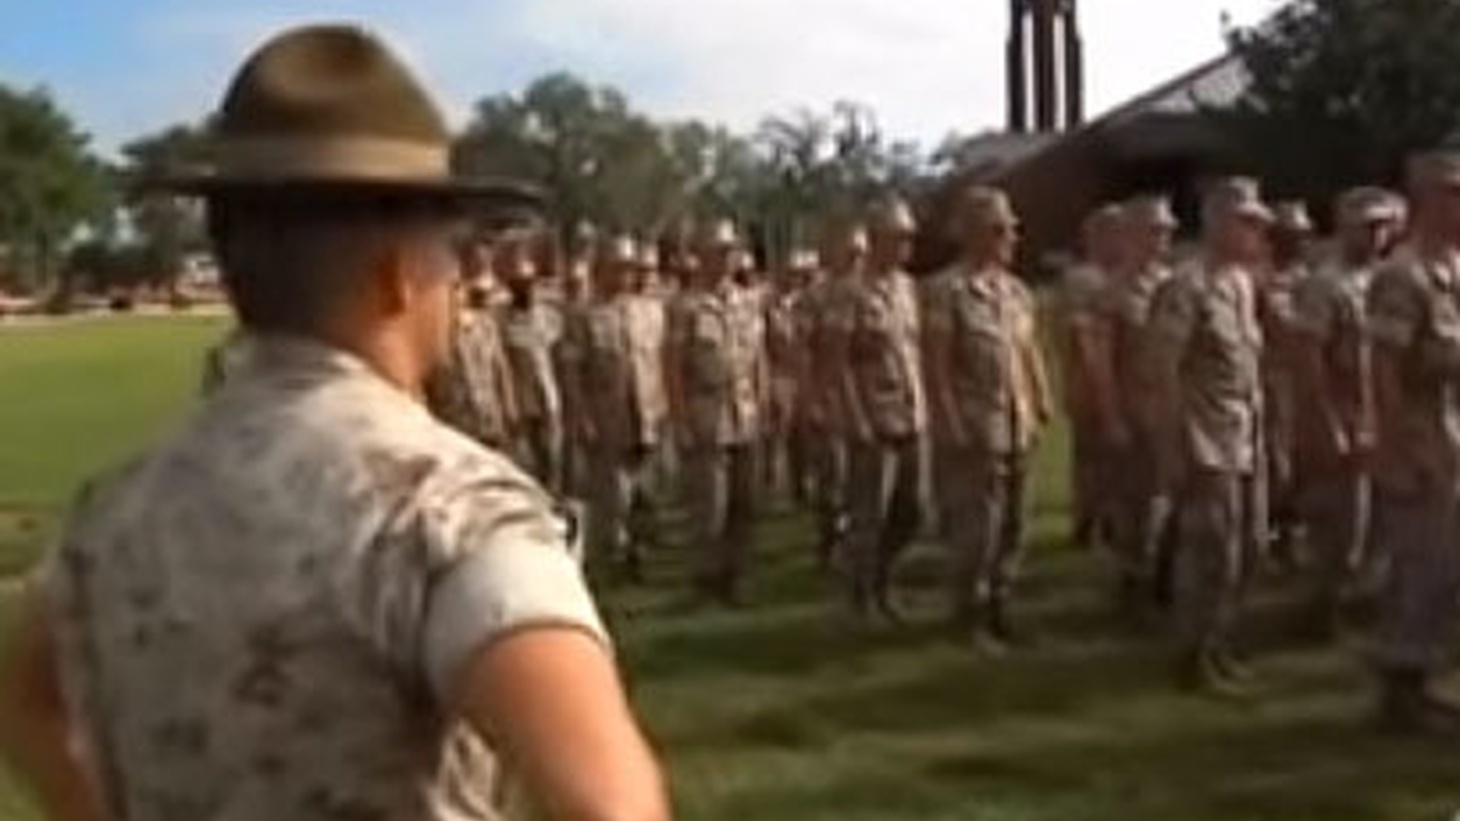 The Marine Corps is conducting no less than  three investigations  of hazing, physical abuse, assault and failure of supervision at Parris Island — all in the aftermath of a suicide. The recruit involved was Raheel Siddiqui, a Muslim and a high-school valedictorian, who was recruited on his college campus.